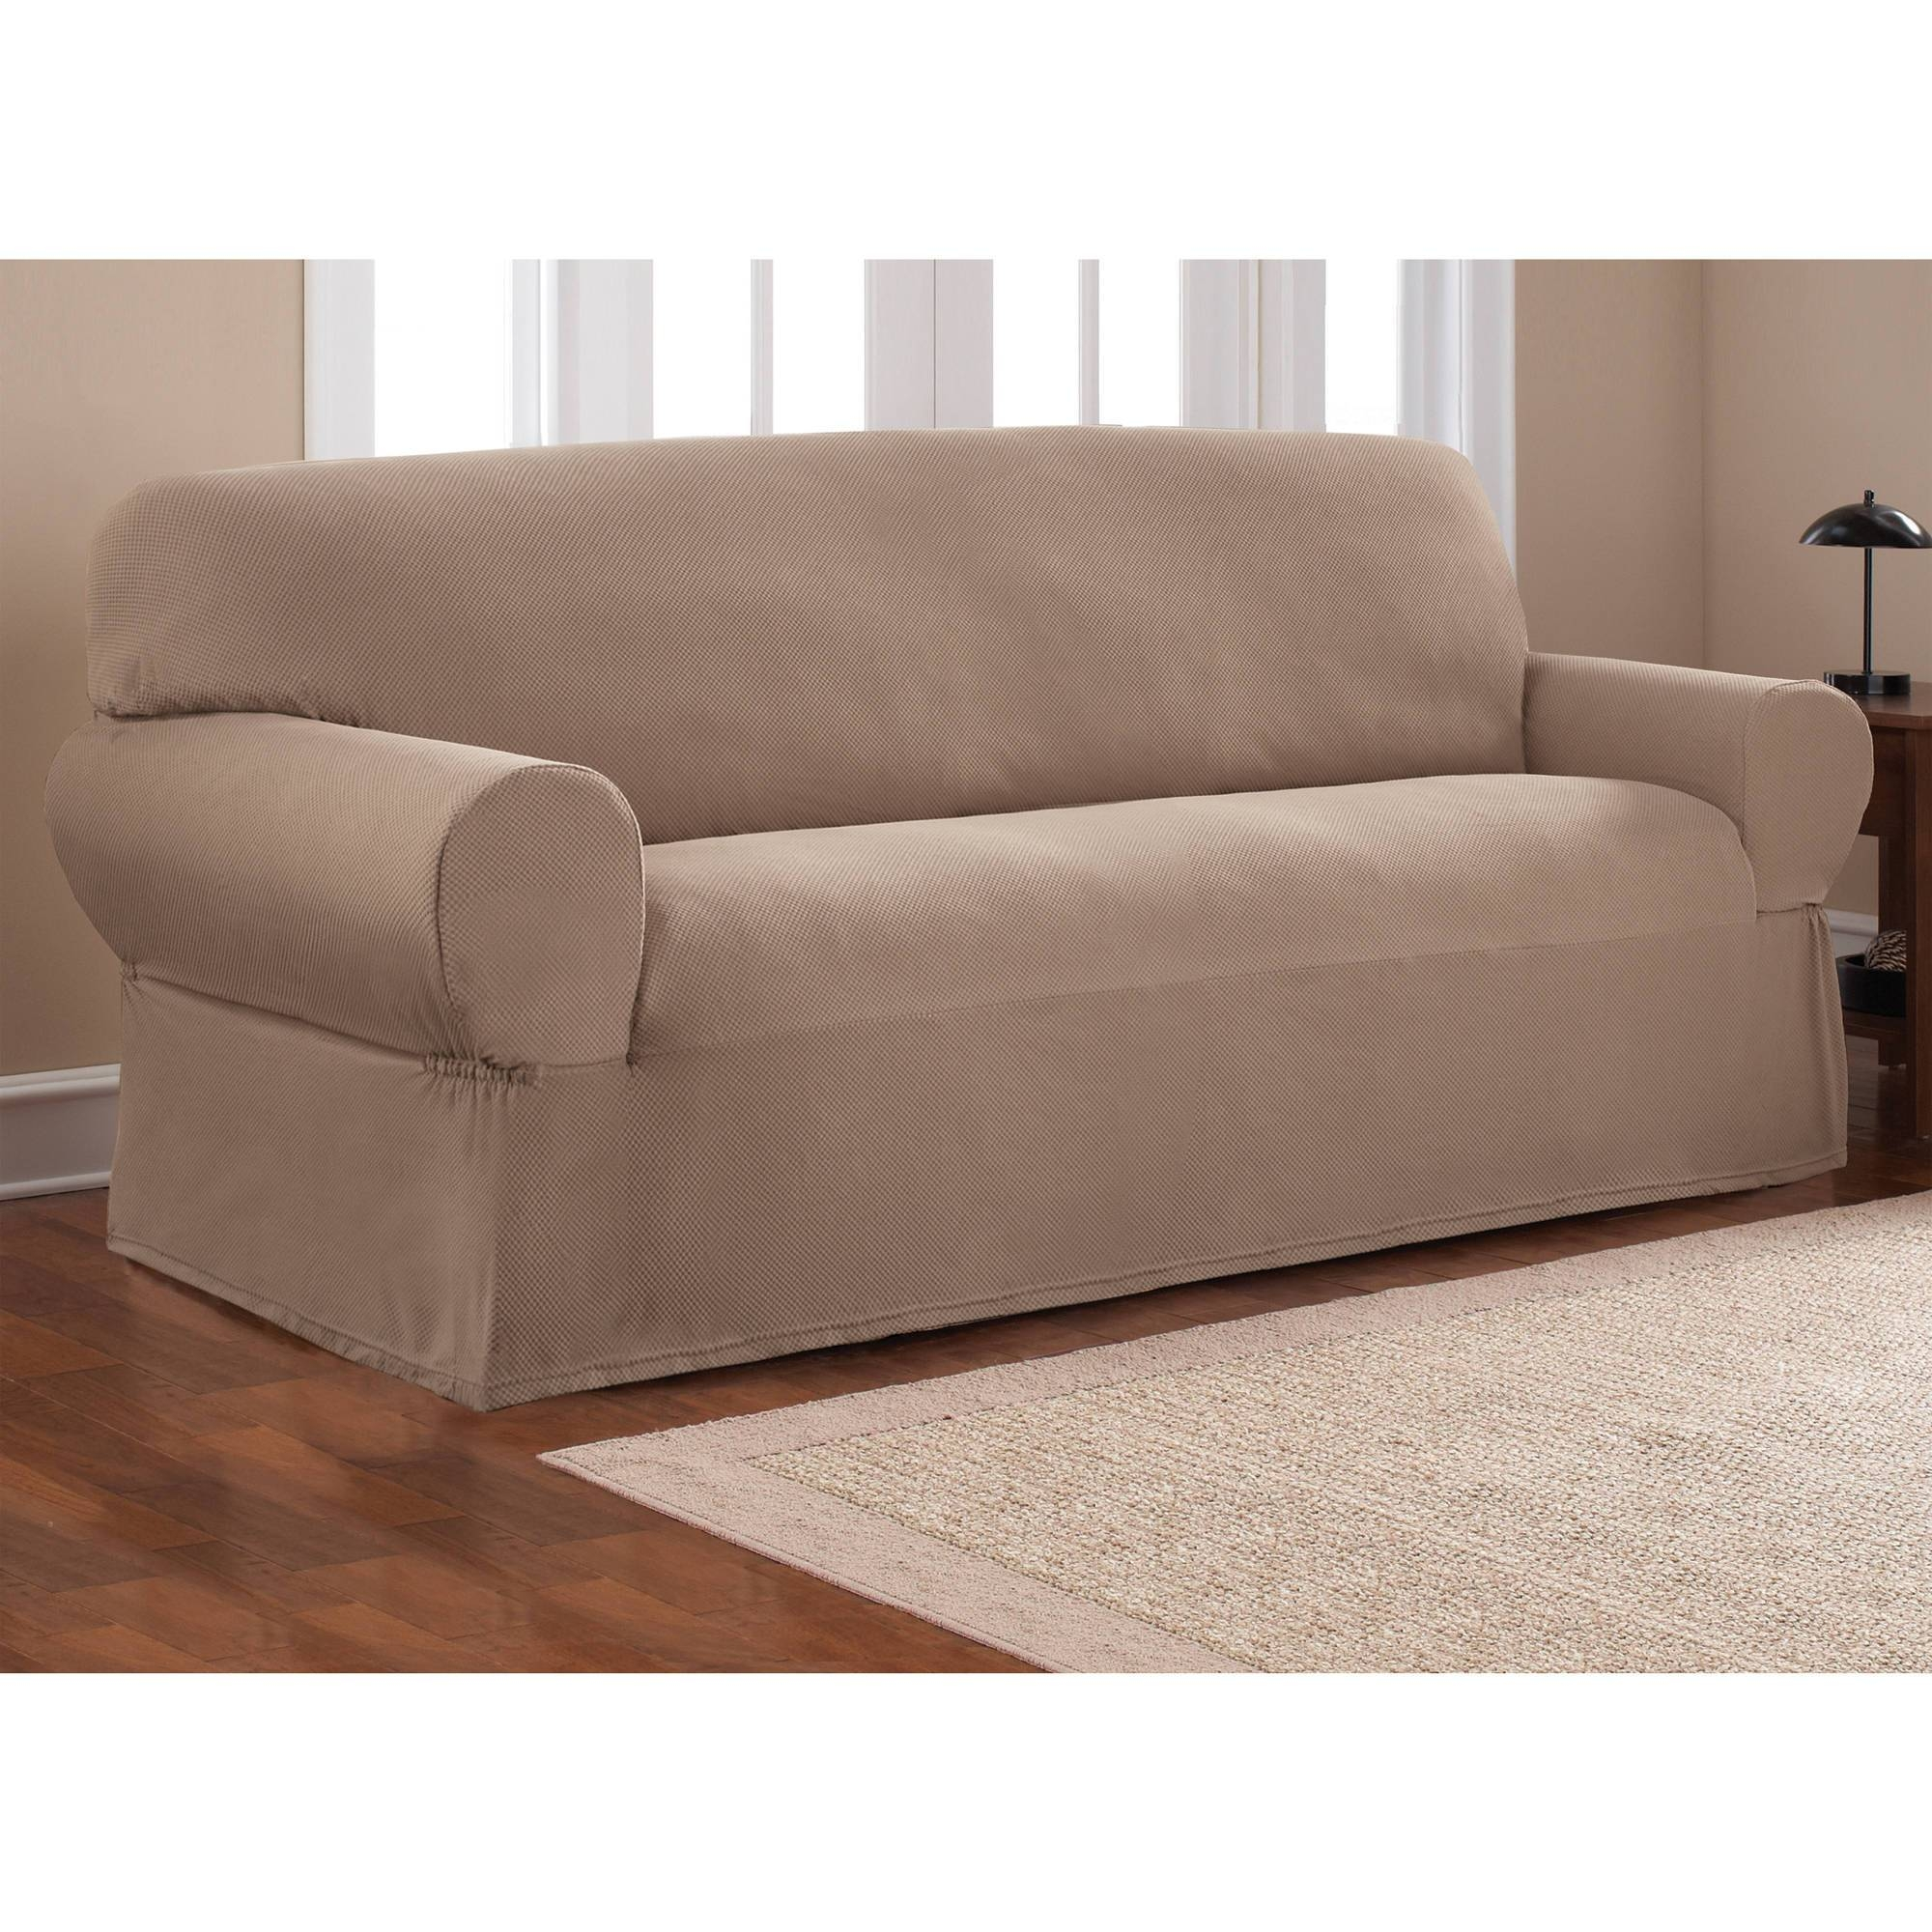 Mainstays 1-Piece Stretch Fabric Sofa Slipcover - Walmart throughout Canvas Sofas Covers (Image 7 of 15)